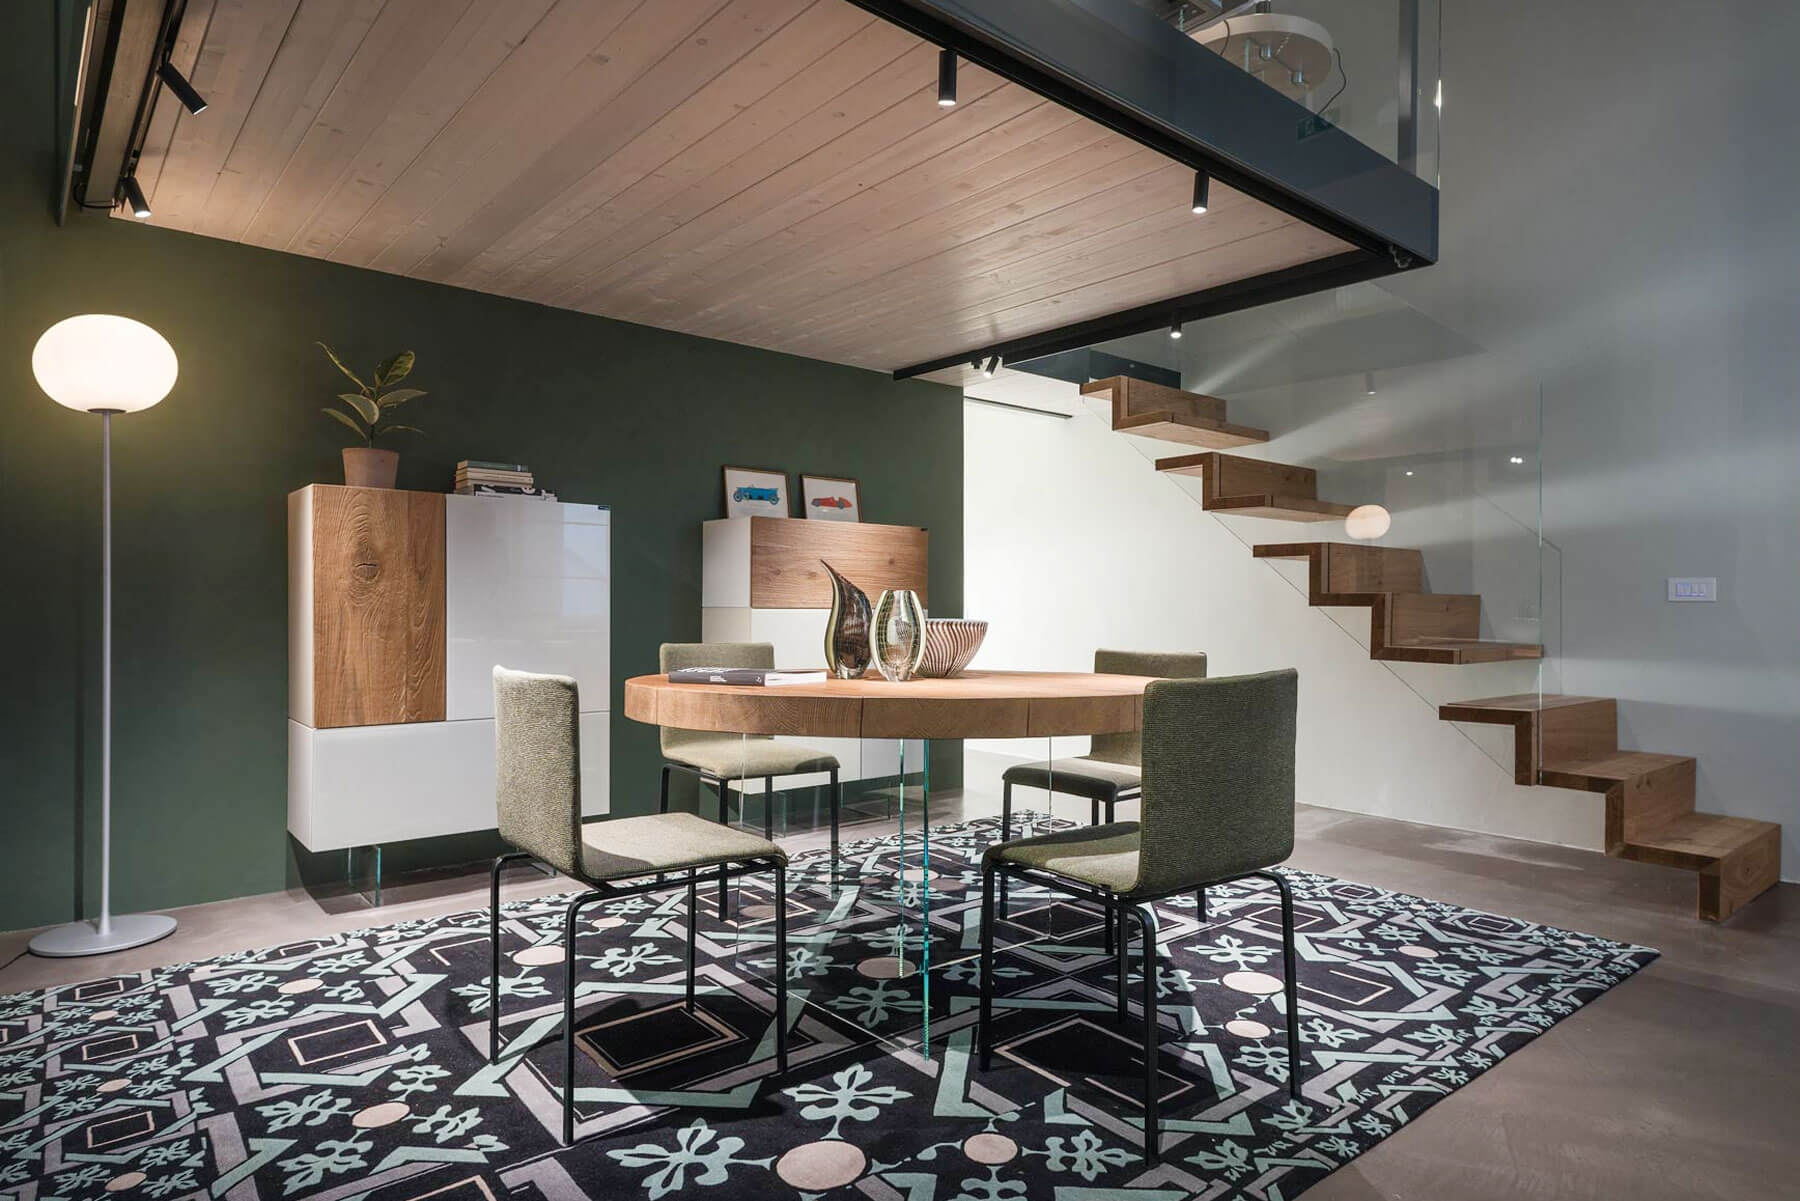 A Dining Room Designed For Socialising Lago Design   Sala Design With Stairs   Front   Showcase   Basement   Siri Ghar   Room Separation